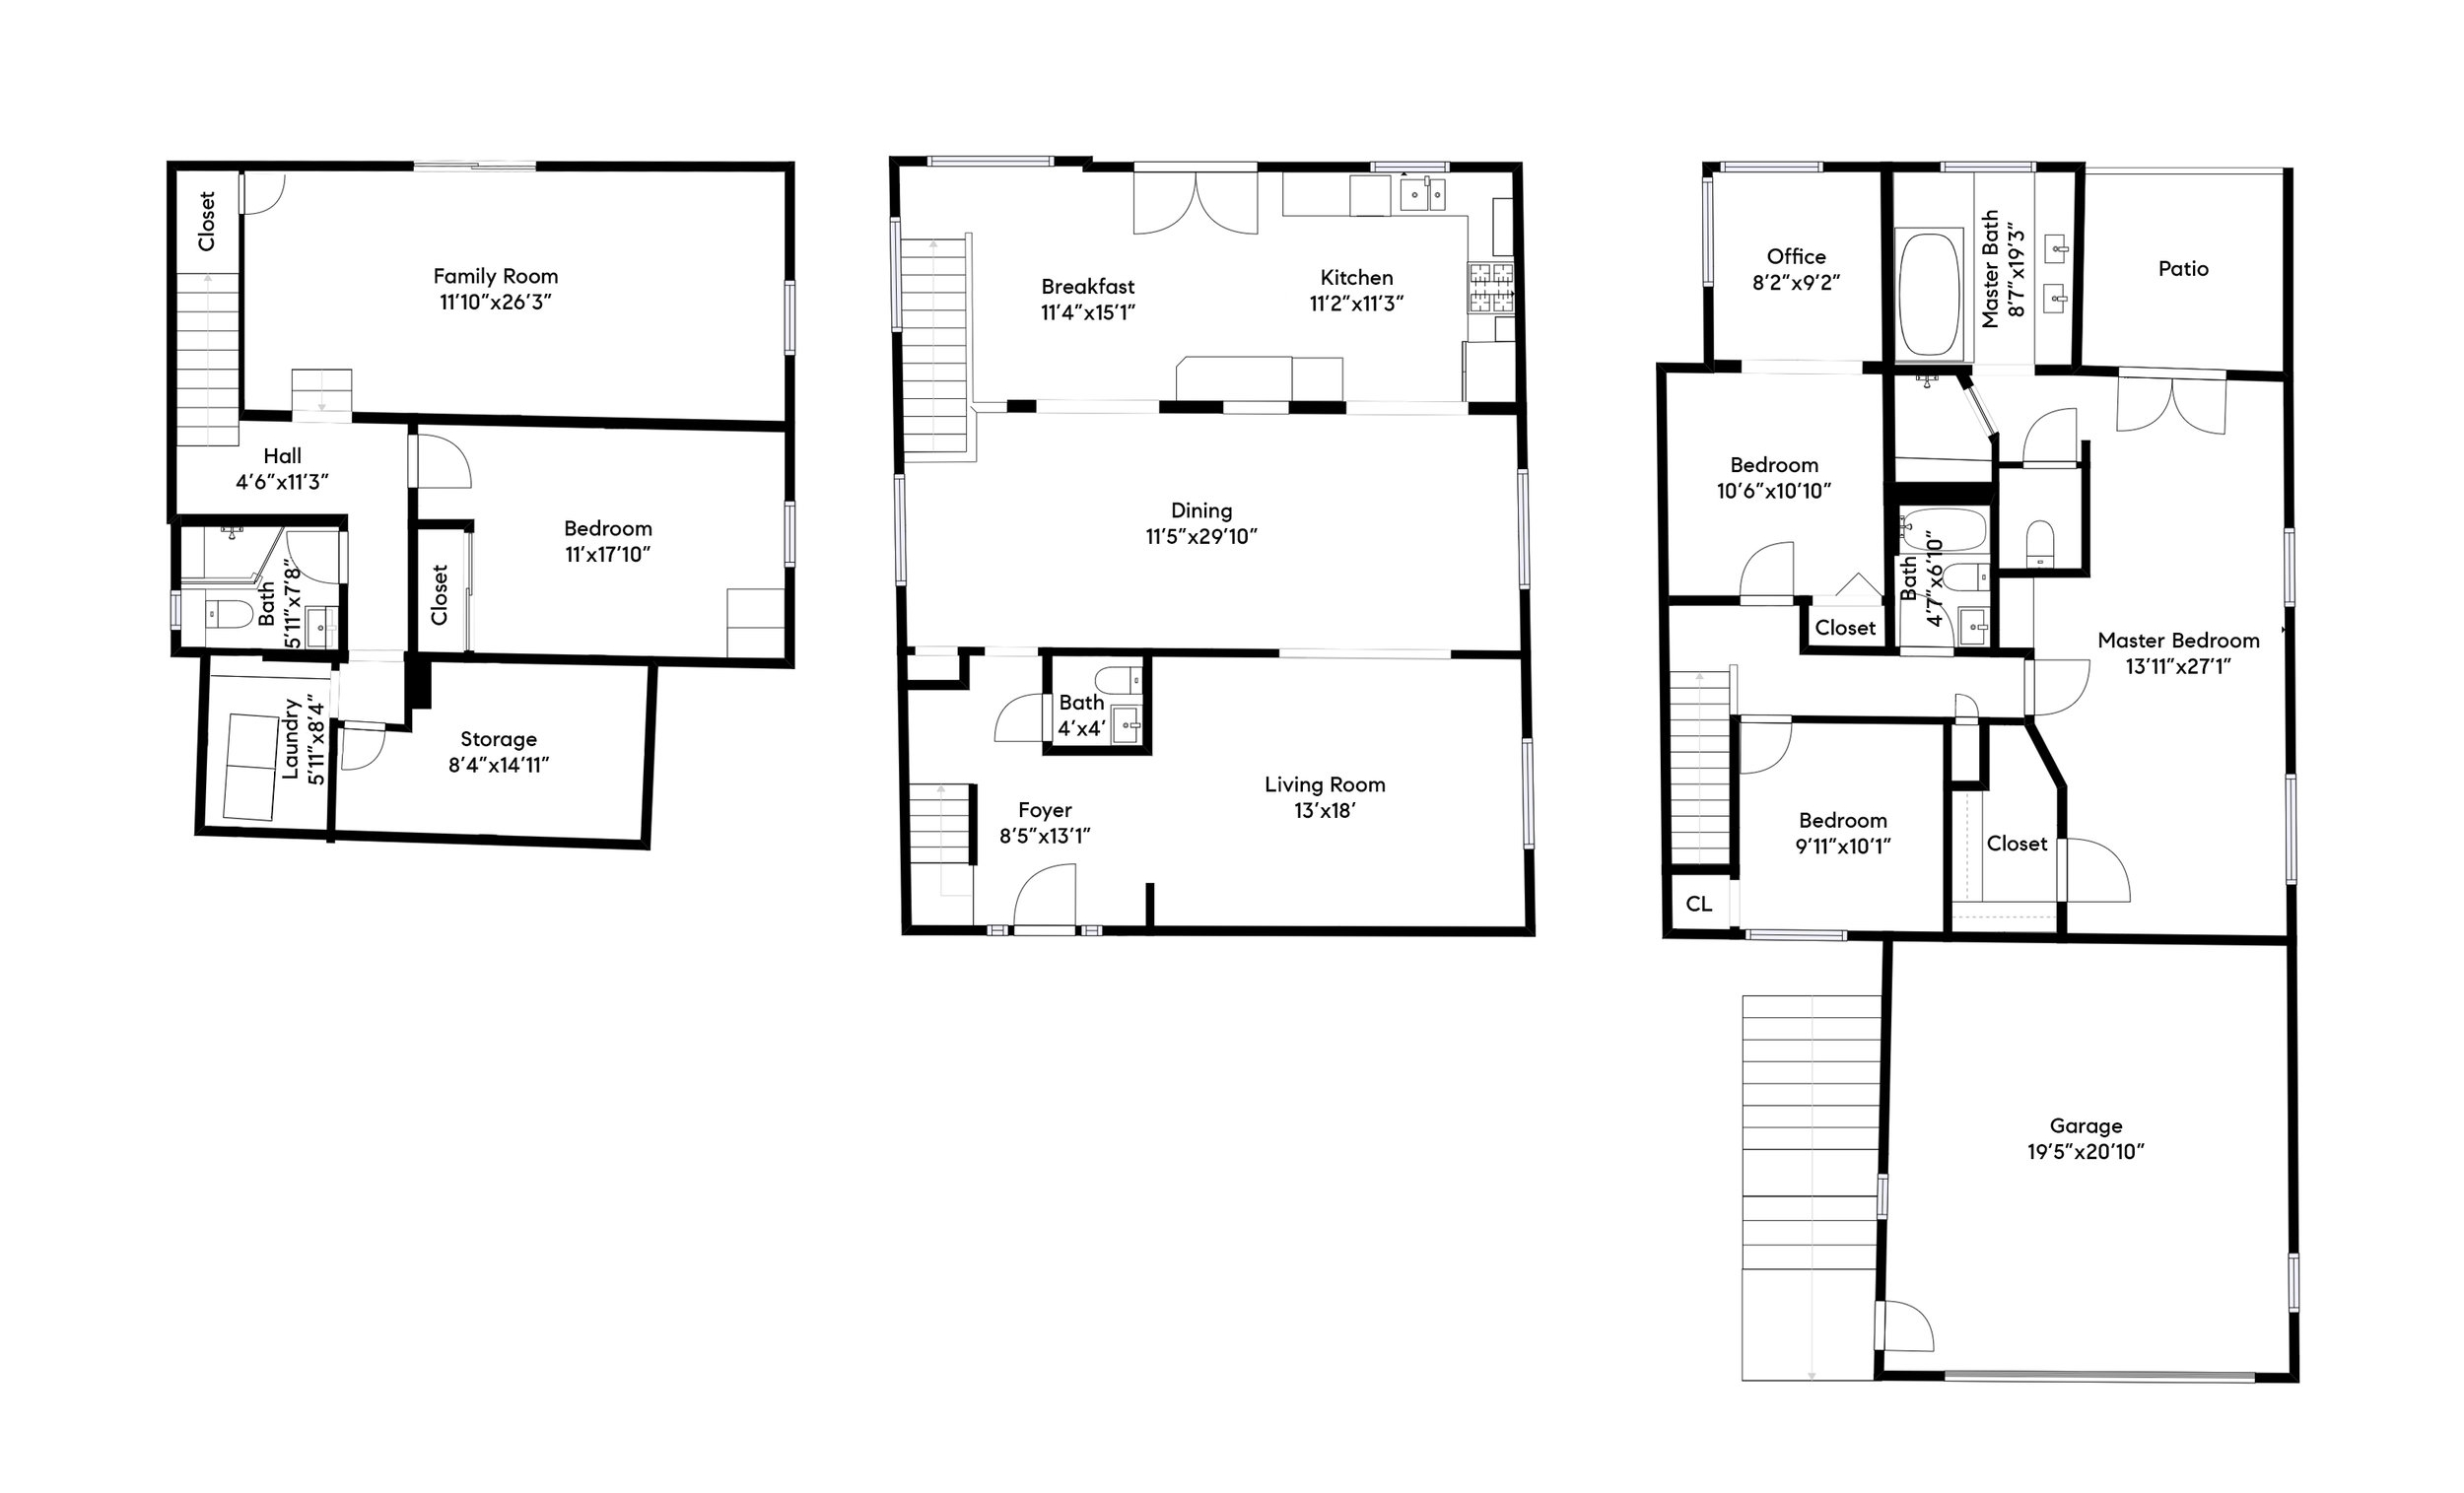 3871 Filion St-Floor Plan.jpg